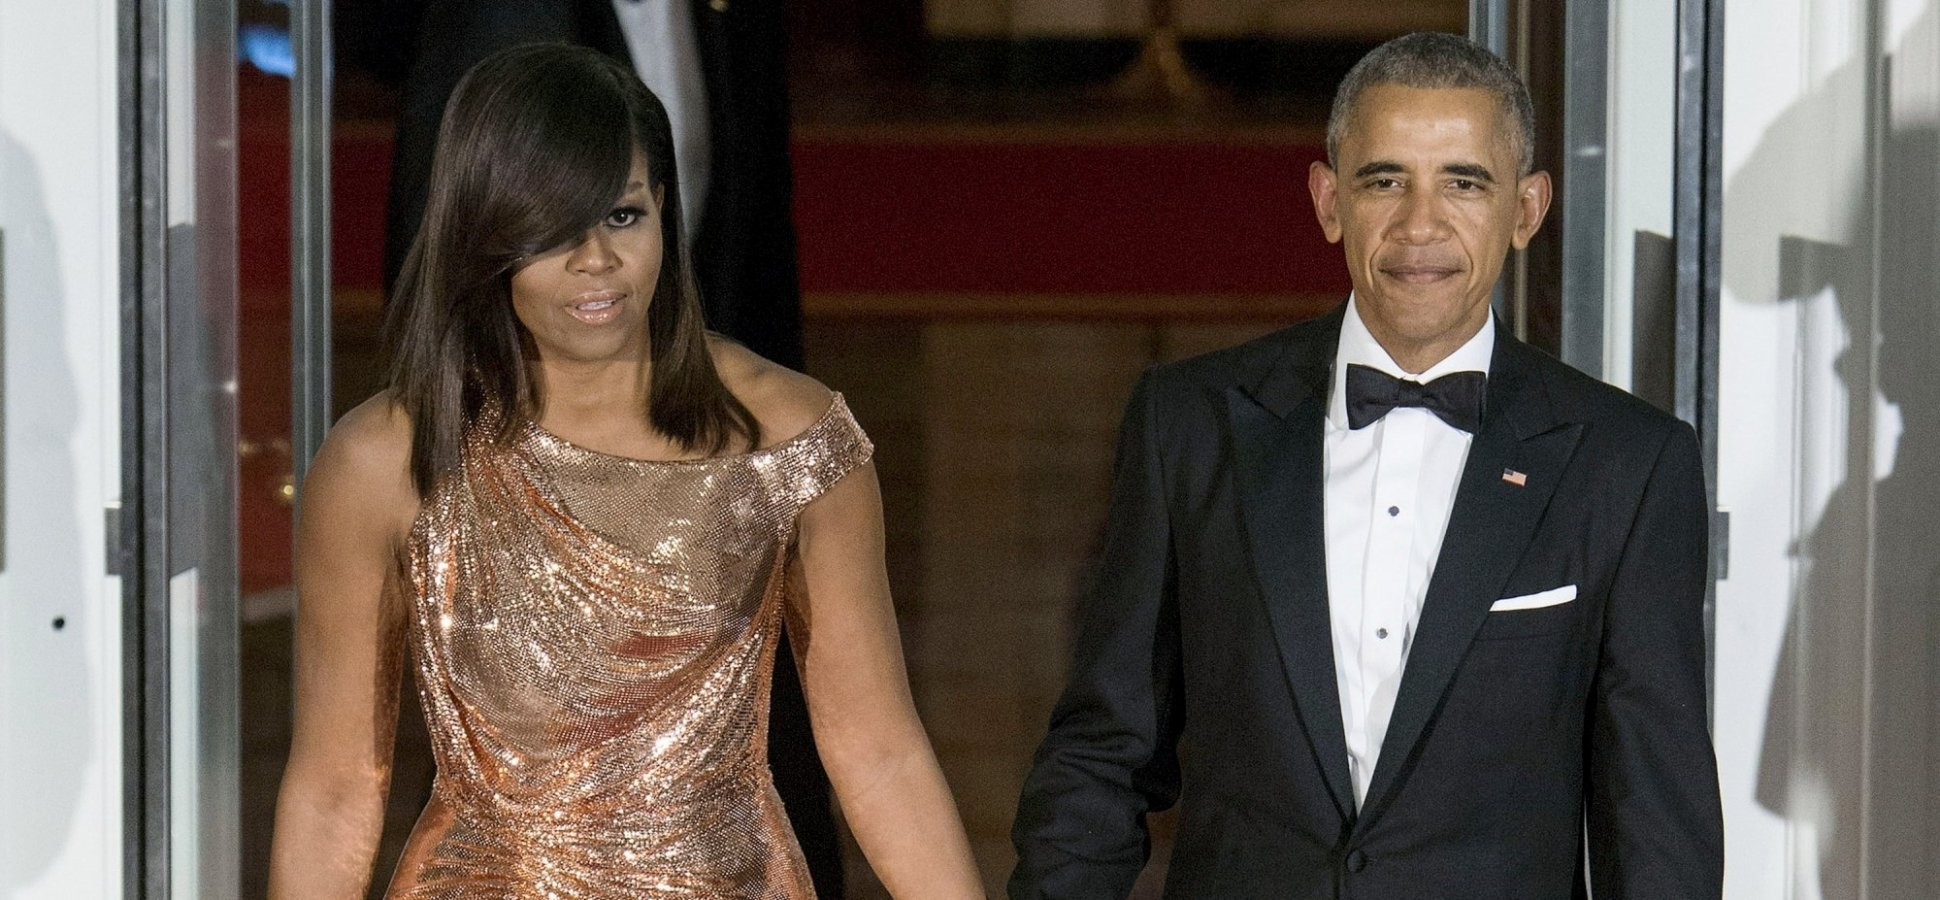 The Obamas Just Announced They're Building a Business Empire on 1 Simple Thing (You Can Too)